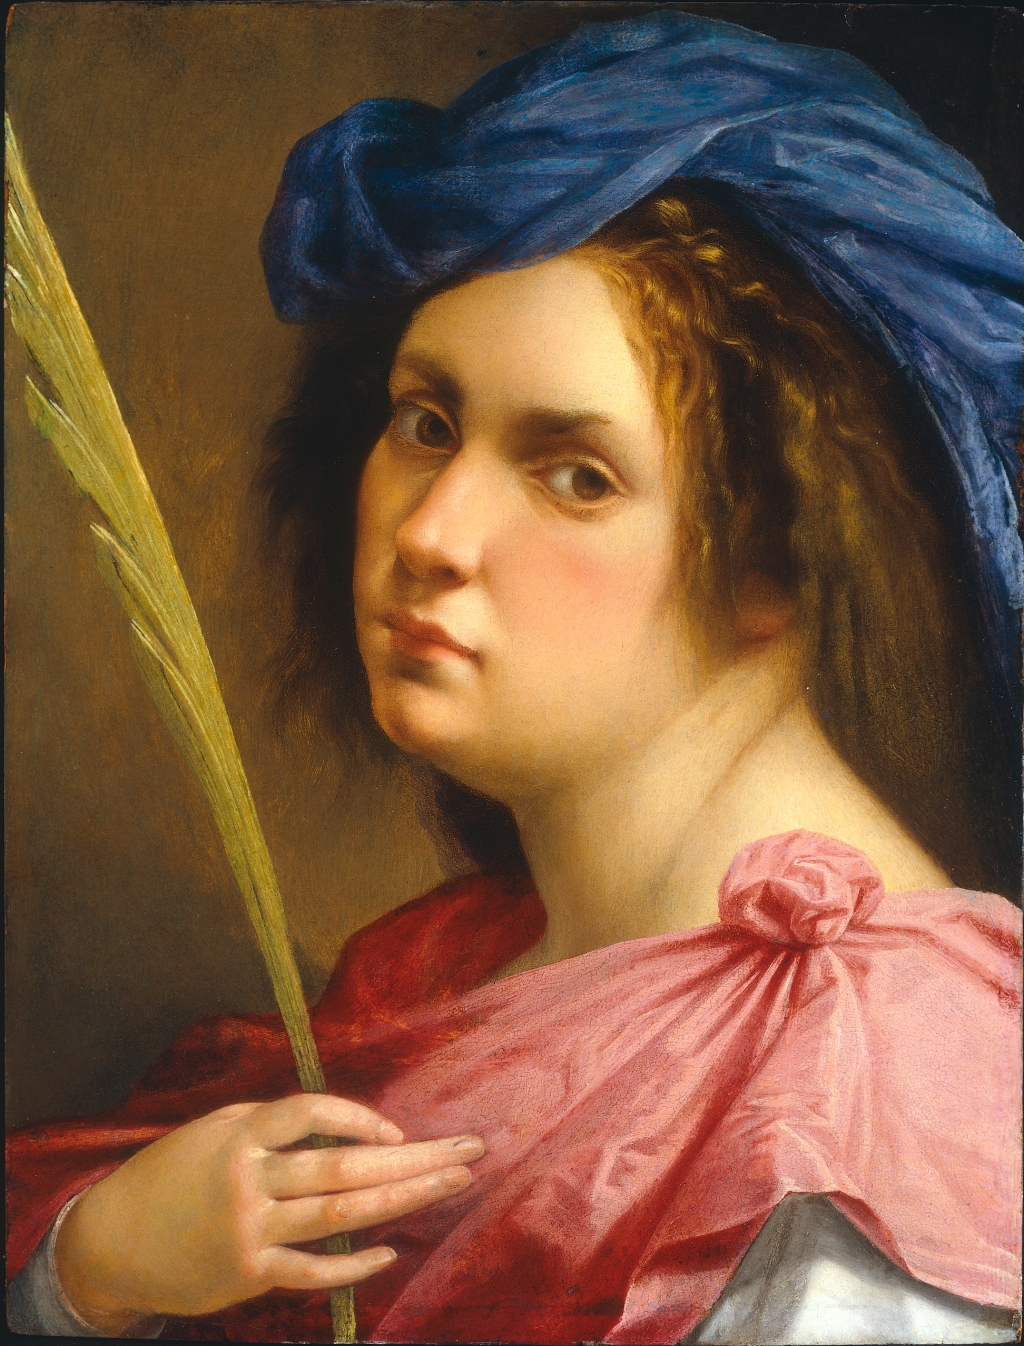 Artemisia Gentileschi Made History with 17th-Century Feminist Art. These Are Her Most Famous Works.